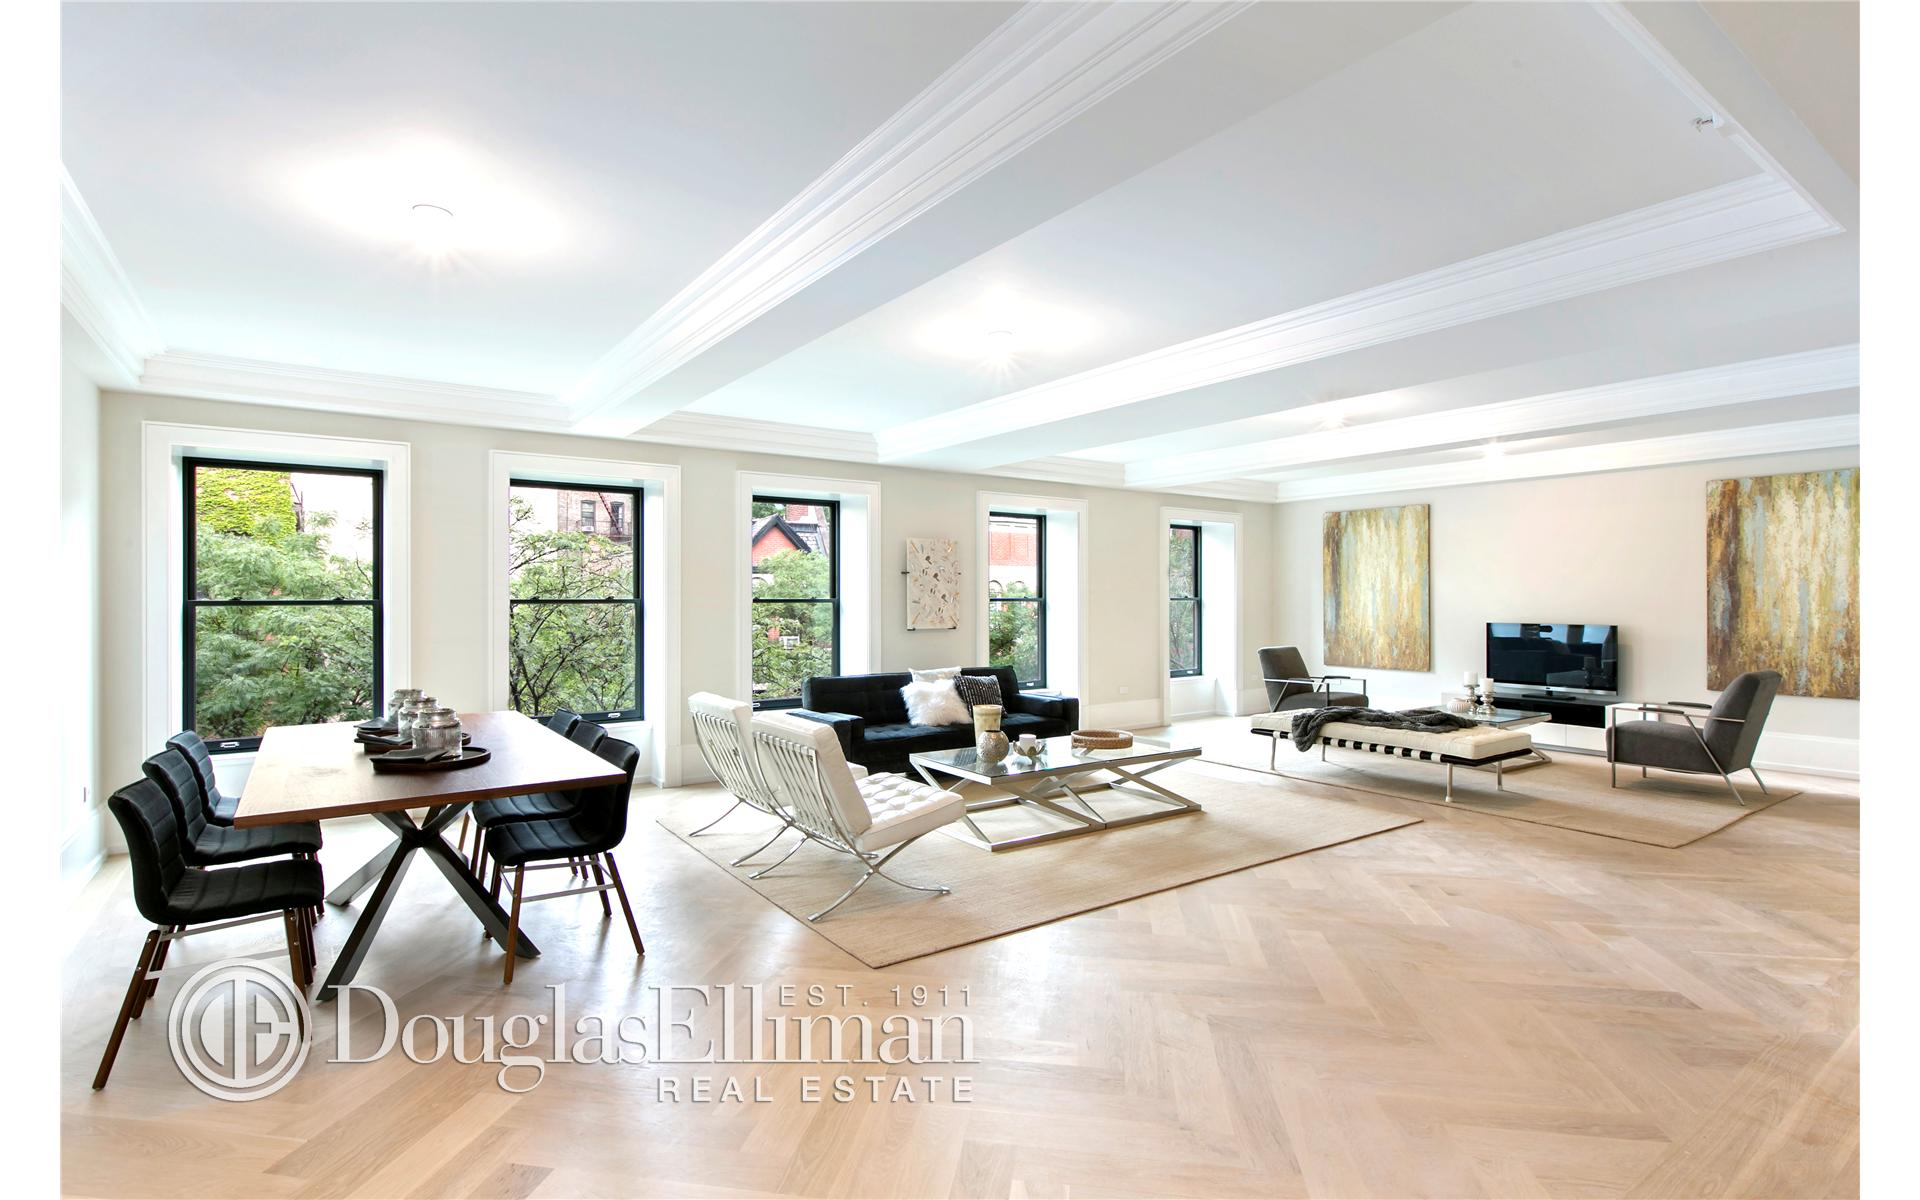 Condominium for Sale at 182 West 82nd Street New York, New York 10024 United States